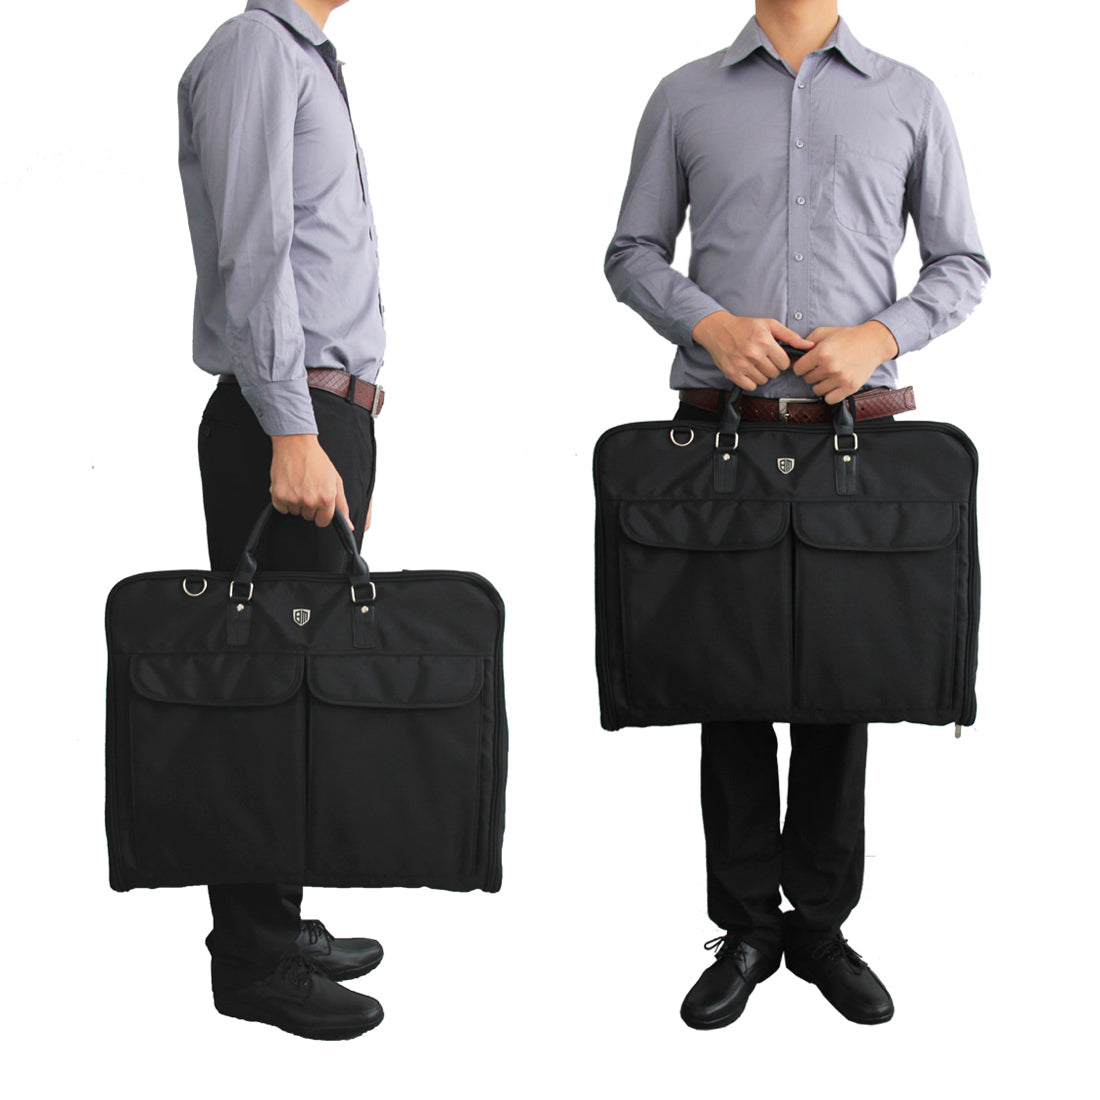 a0845ddb81 Garment Bag for Suits and Wedding Dresses with Shoulder Strap and Hanger